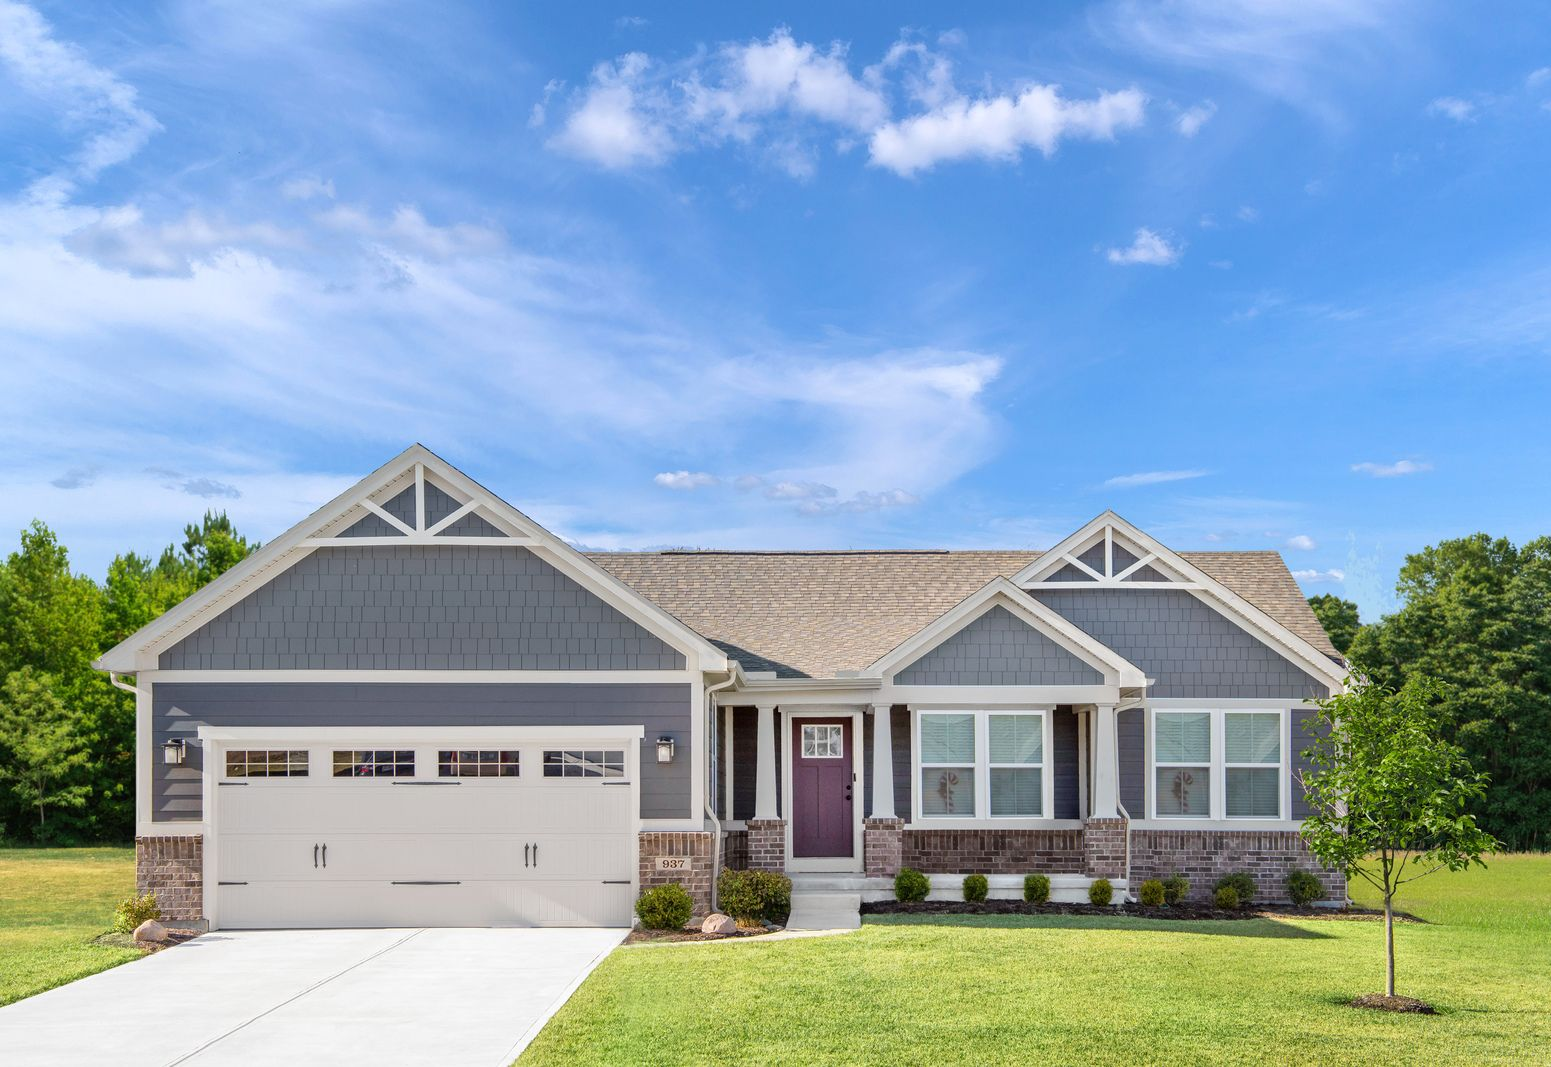 WELCOME HOME TO TARA ESTATES:Build your dream home on 1/2 acre homesites in a country setting w/ craftsman exteriors! Minutes from I-75 with convenience to Cincinnati & Dayton! From low $200s.Click here toschedule your visit!